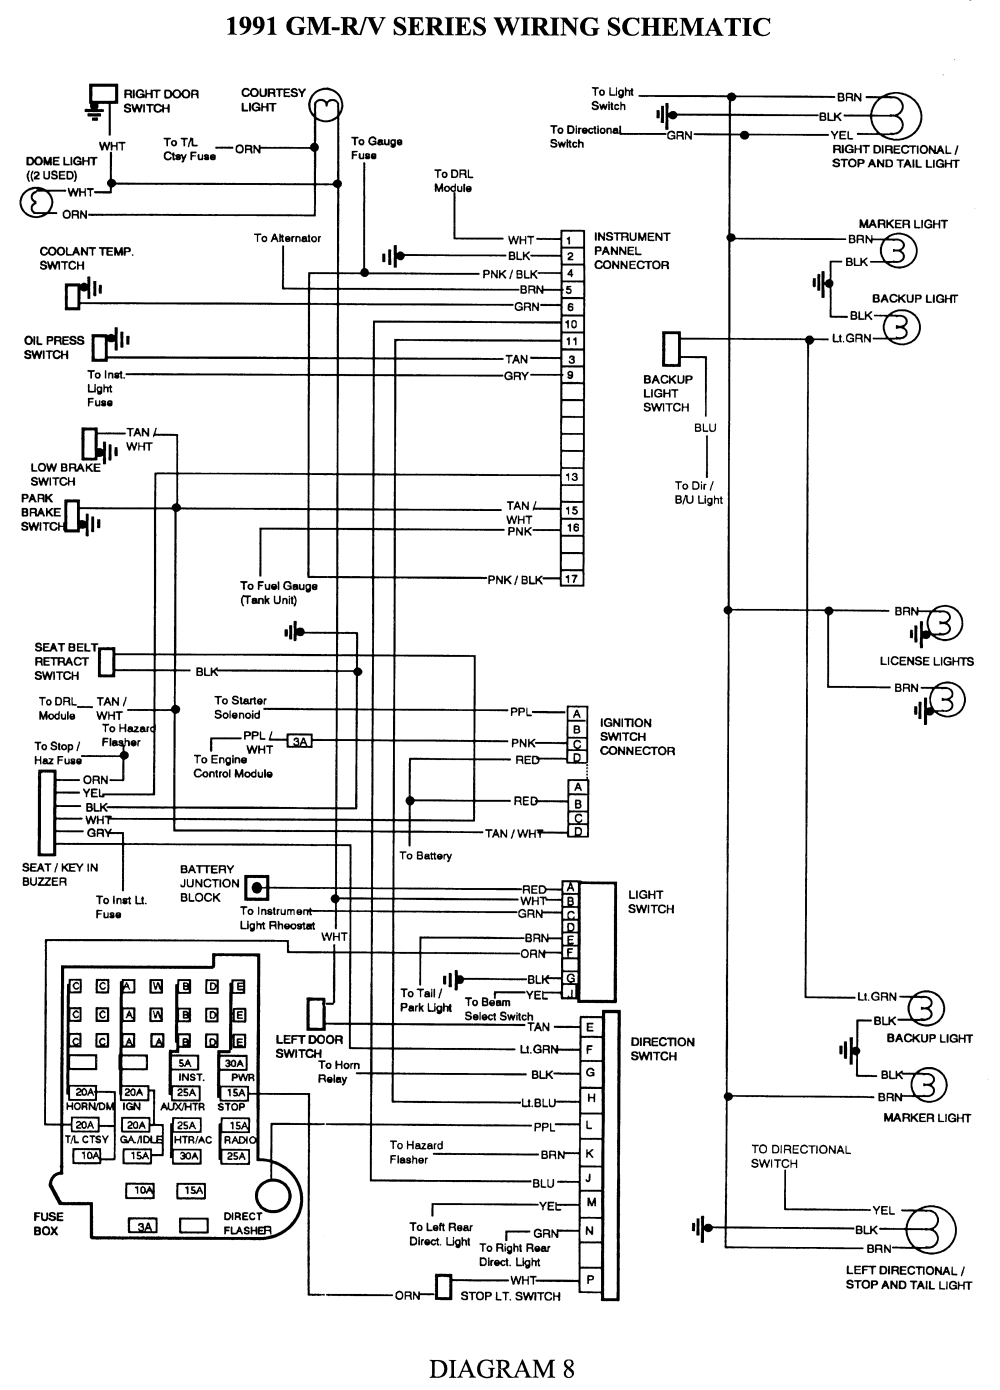 1997 Chevy S10 Wiring Diagram from wholefoodsonabudget.com